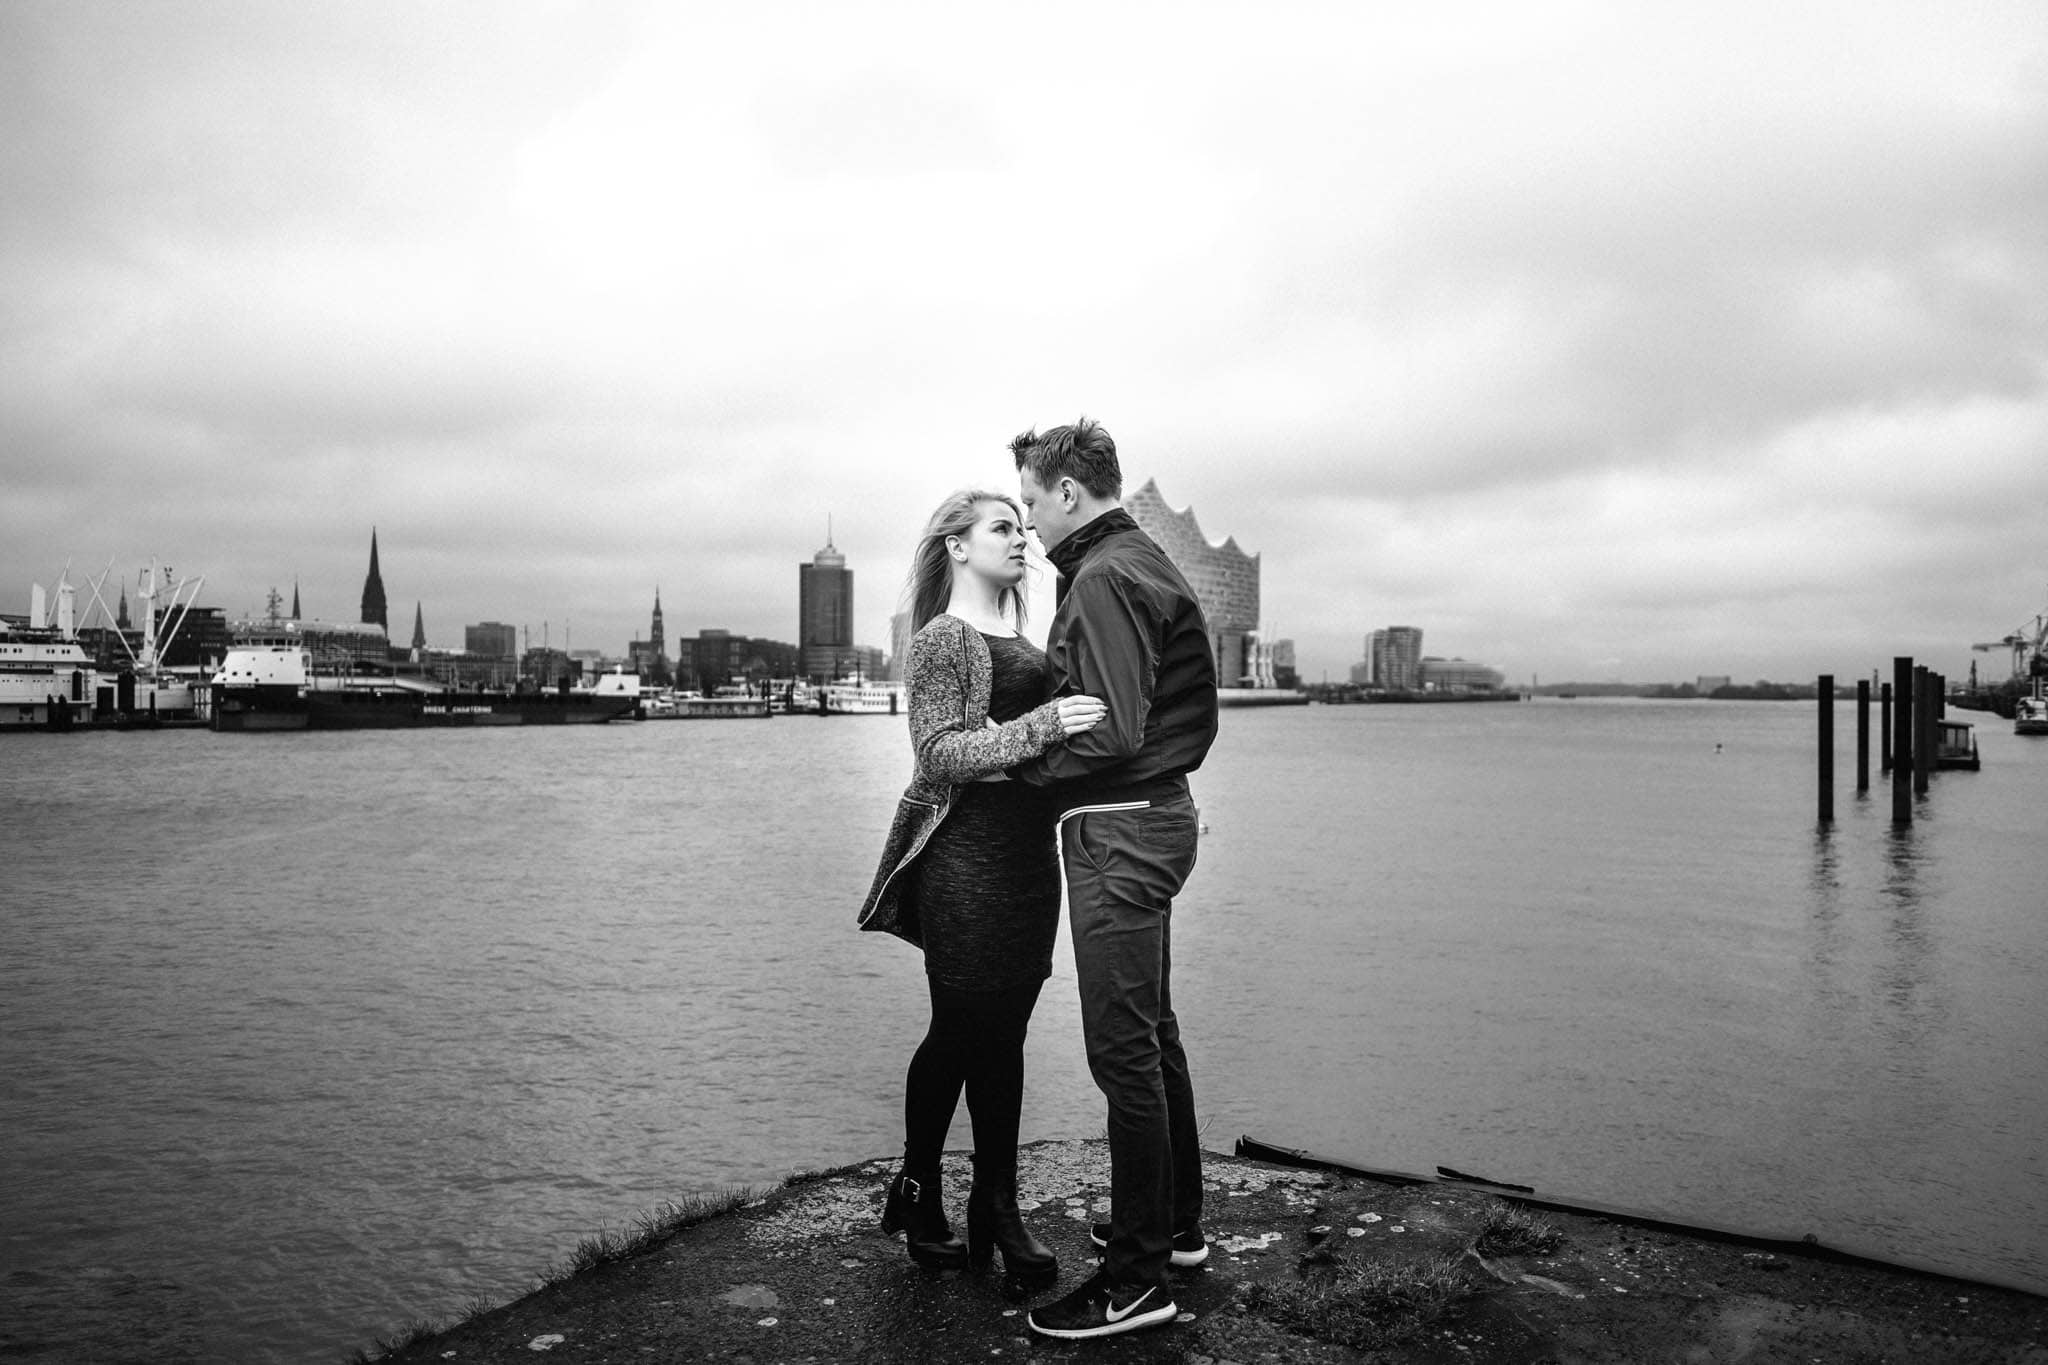 Engagementshooting, Hochzeitsfieber by Photo-Schomburg, Pärchenshoot, Hamburg, Elbe, Hamburger Hafen, Hochzeitsfotograf, Wedding, Coupleshoot, Hochzeitsfotografie-15